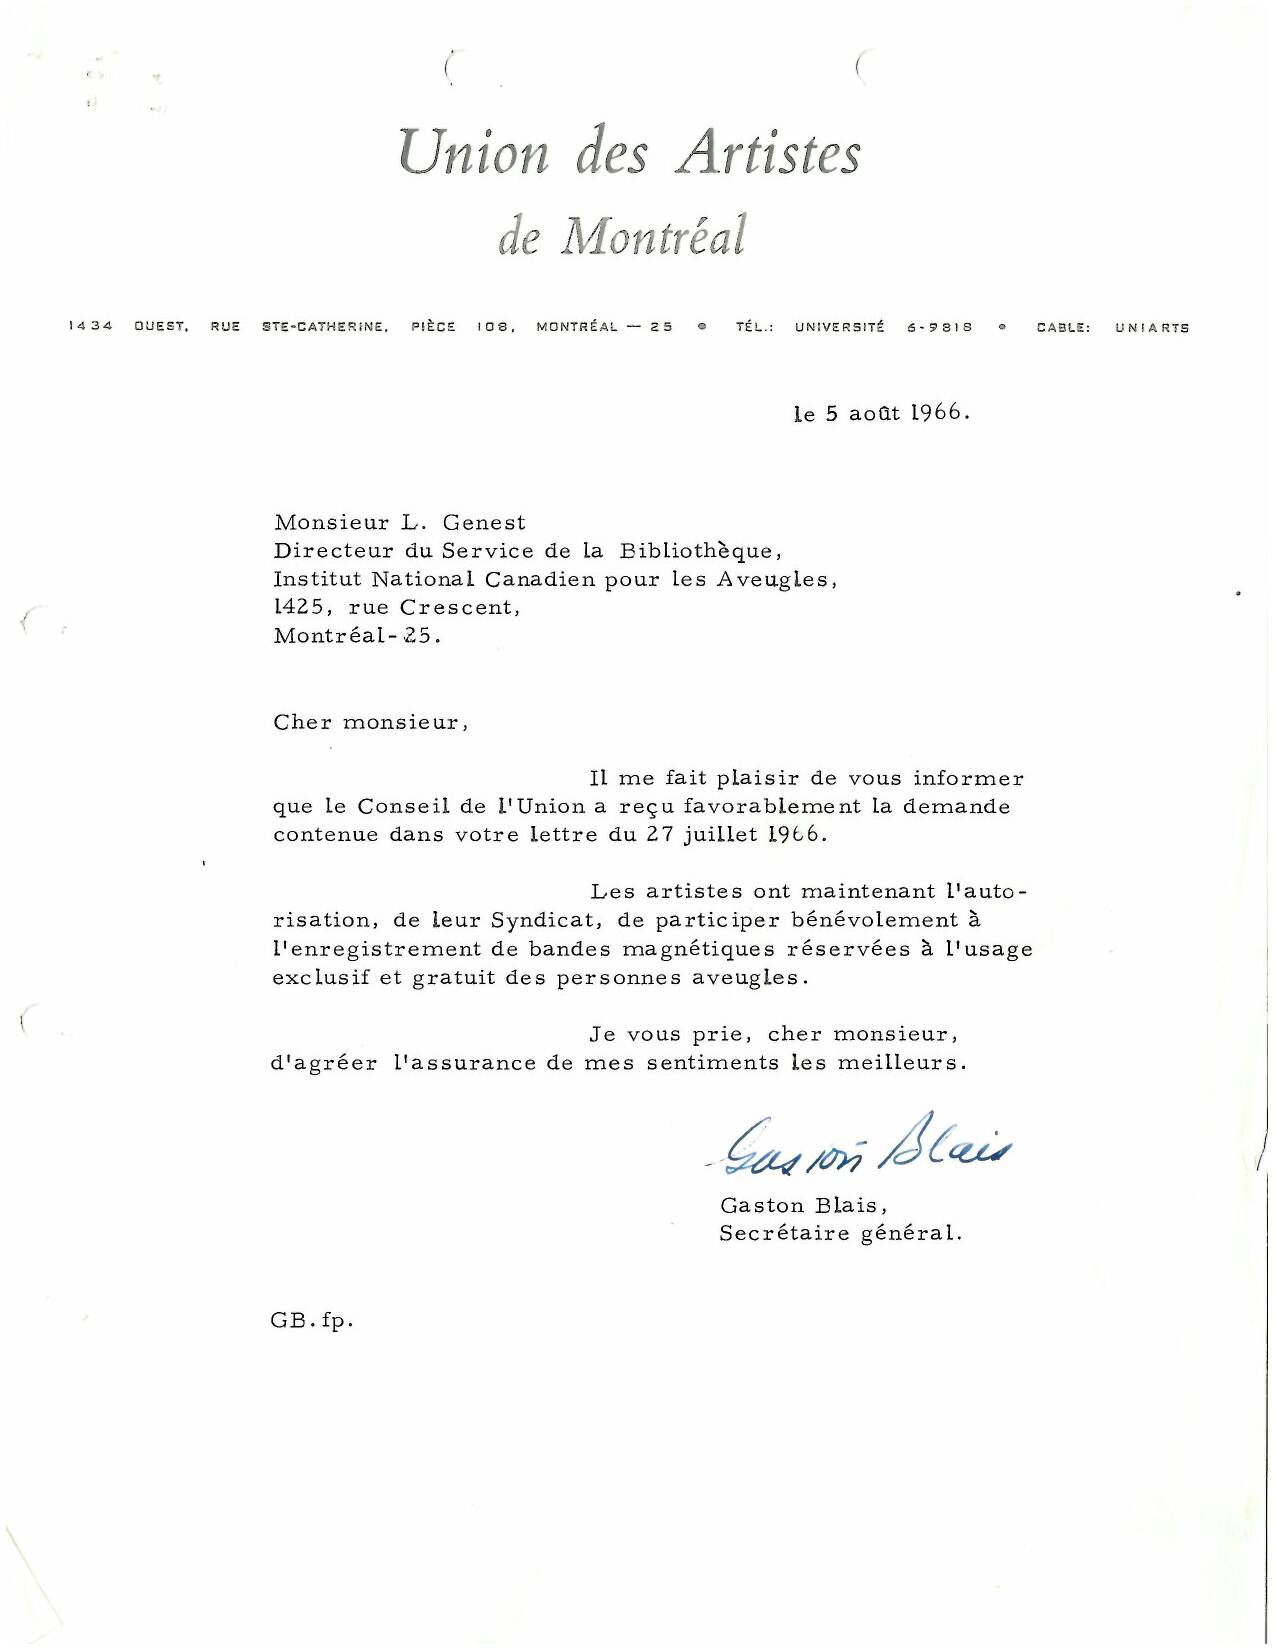 Union des artistes  agreement archive, from 1966